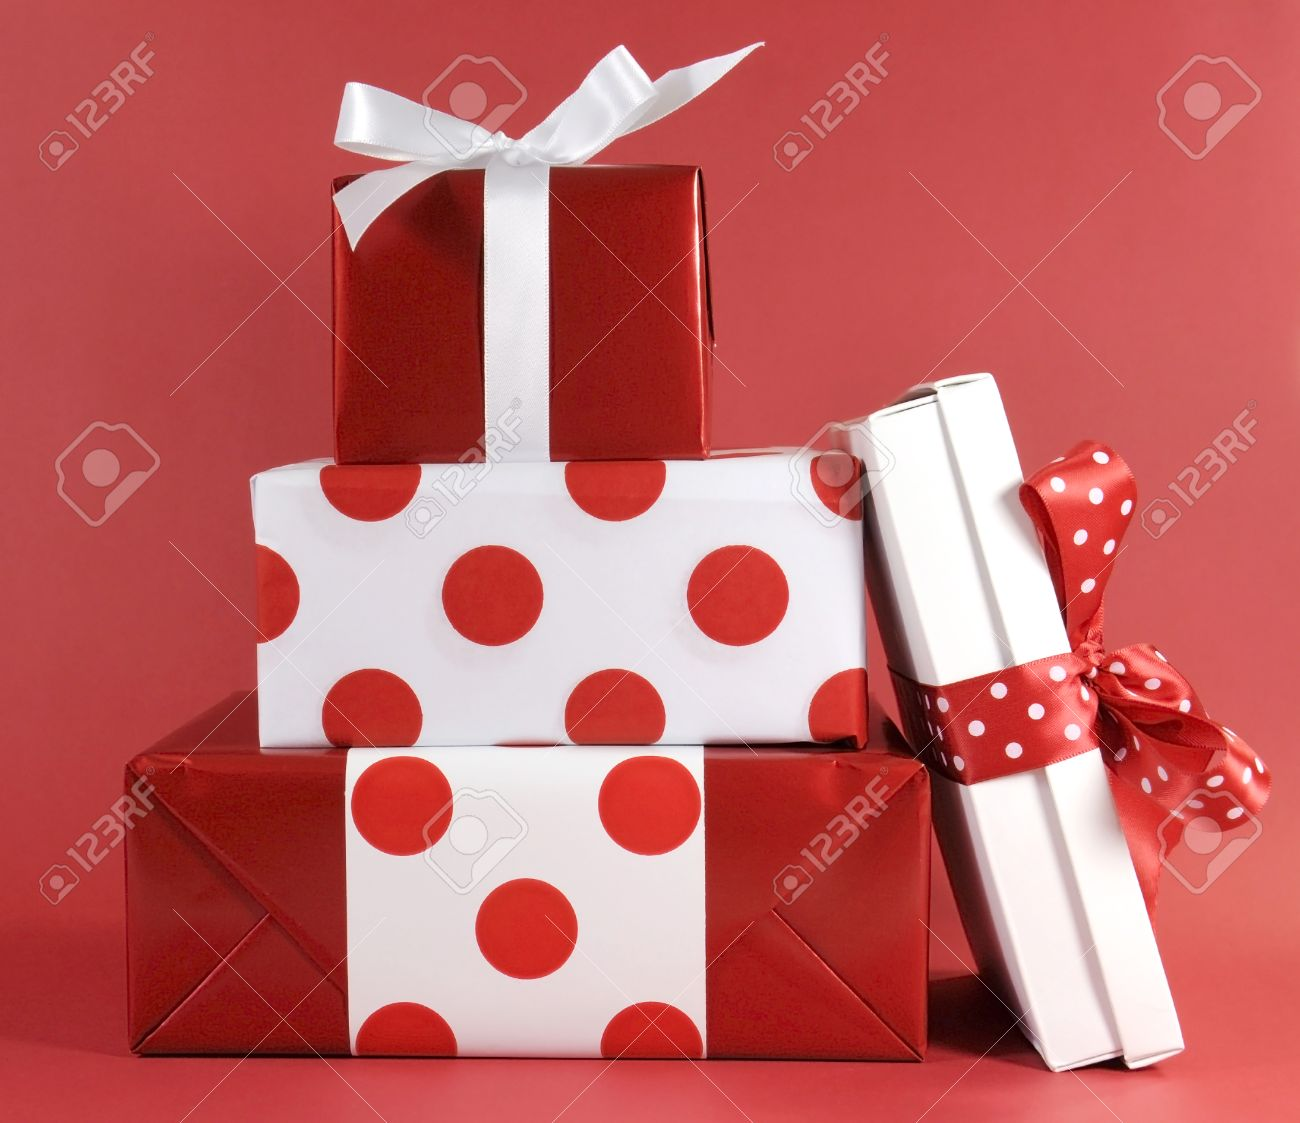 Stack Of Red And White Polka Dot Theme Festive Gift Box Presents For Christmas Valentine